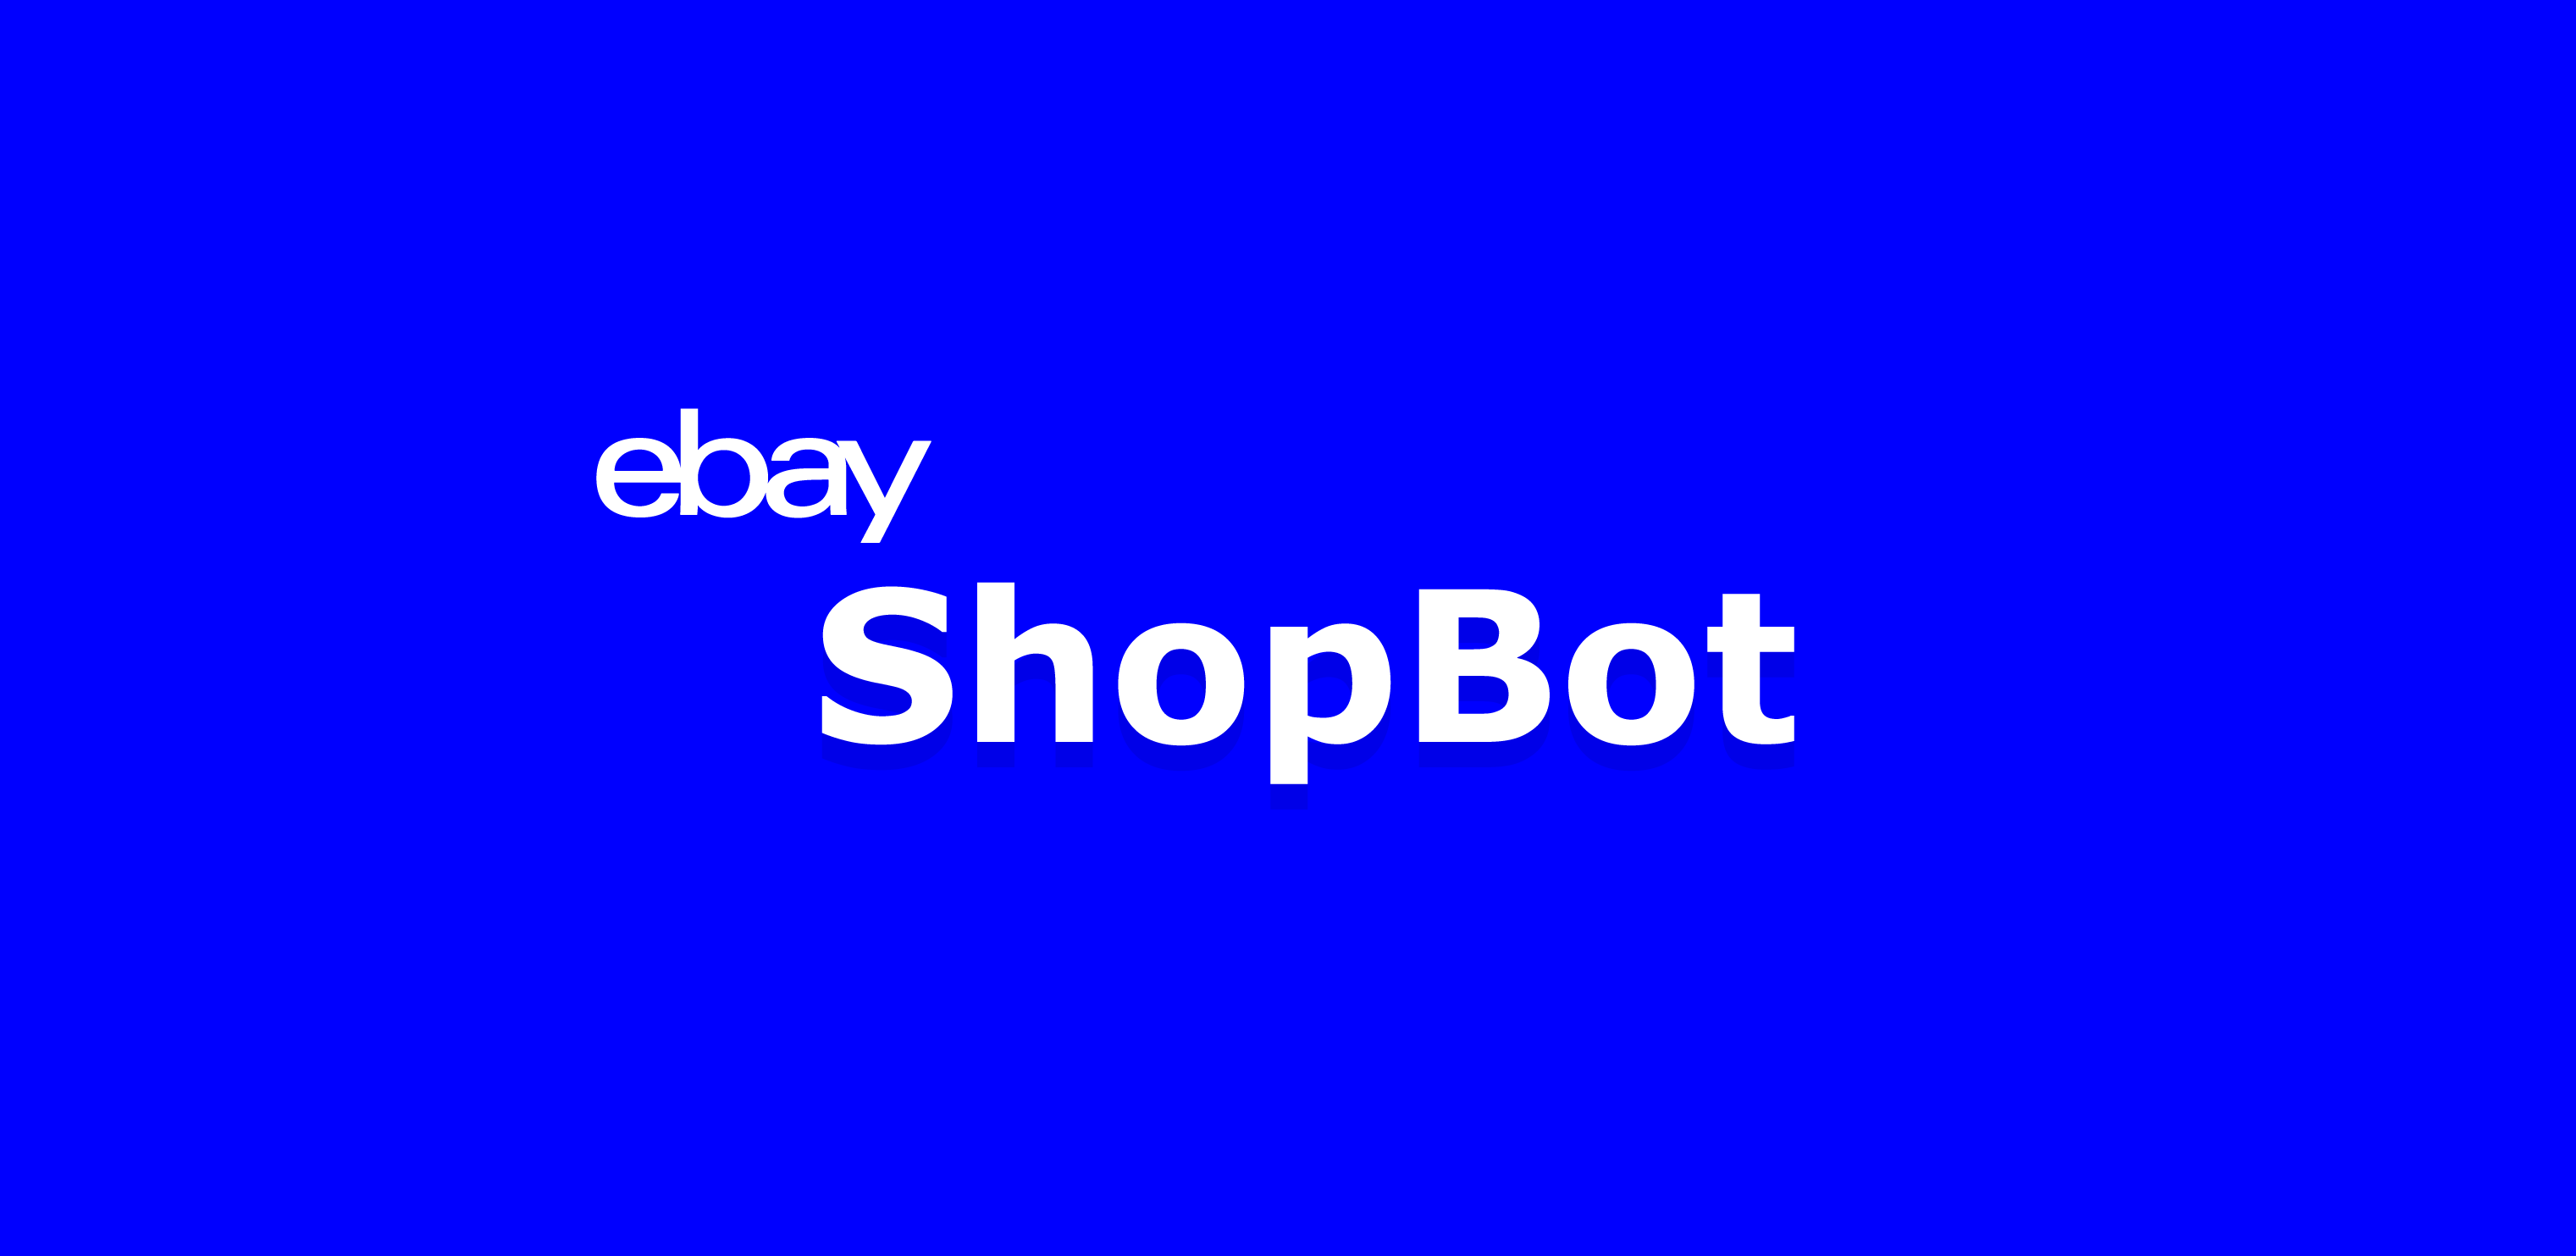 Header image for eBay project